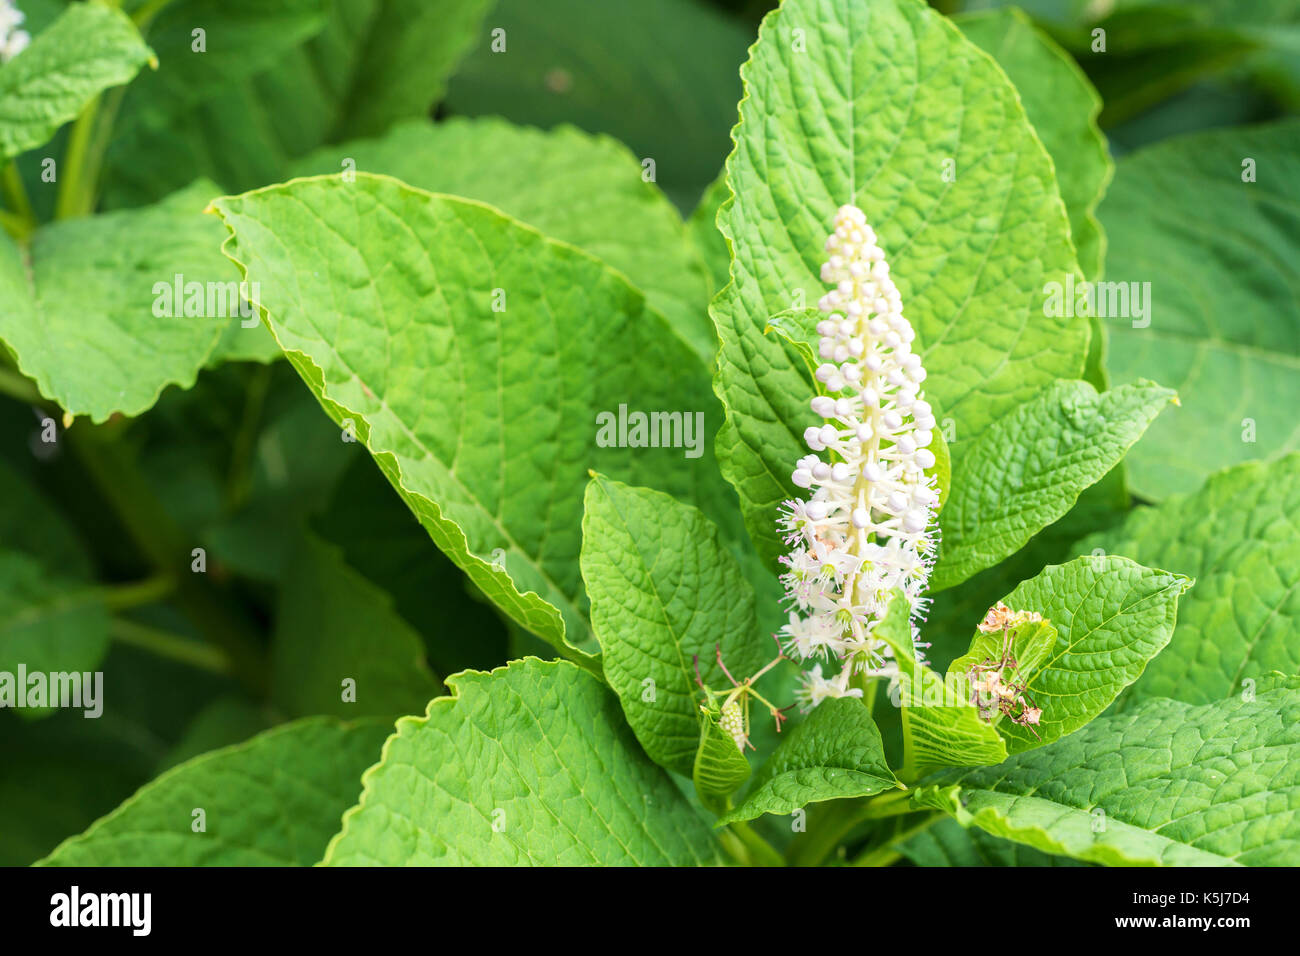 Indian pokeweed or Phytolacca acinosa - Stock Image